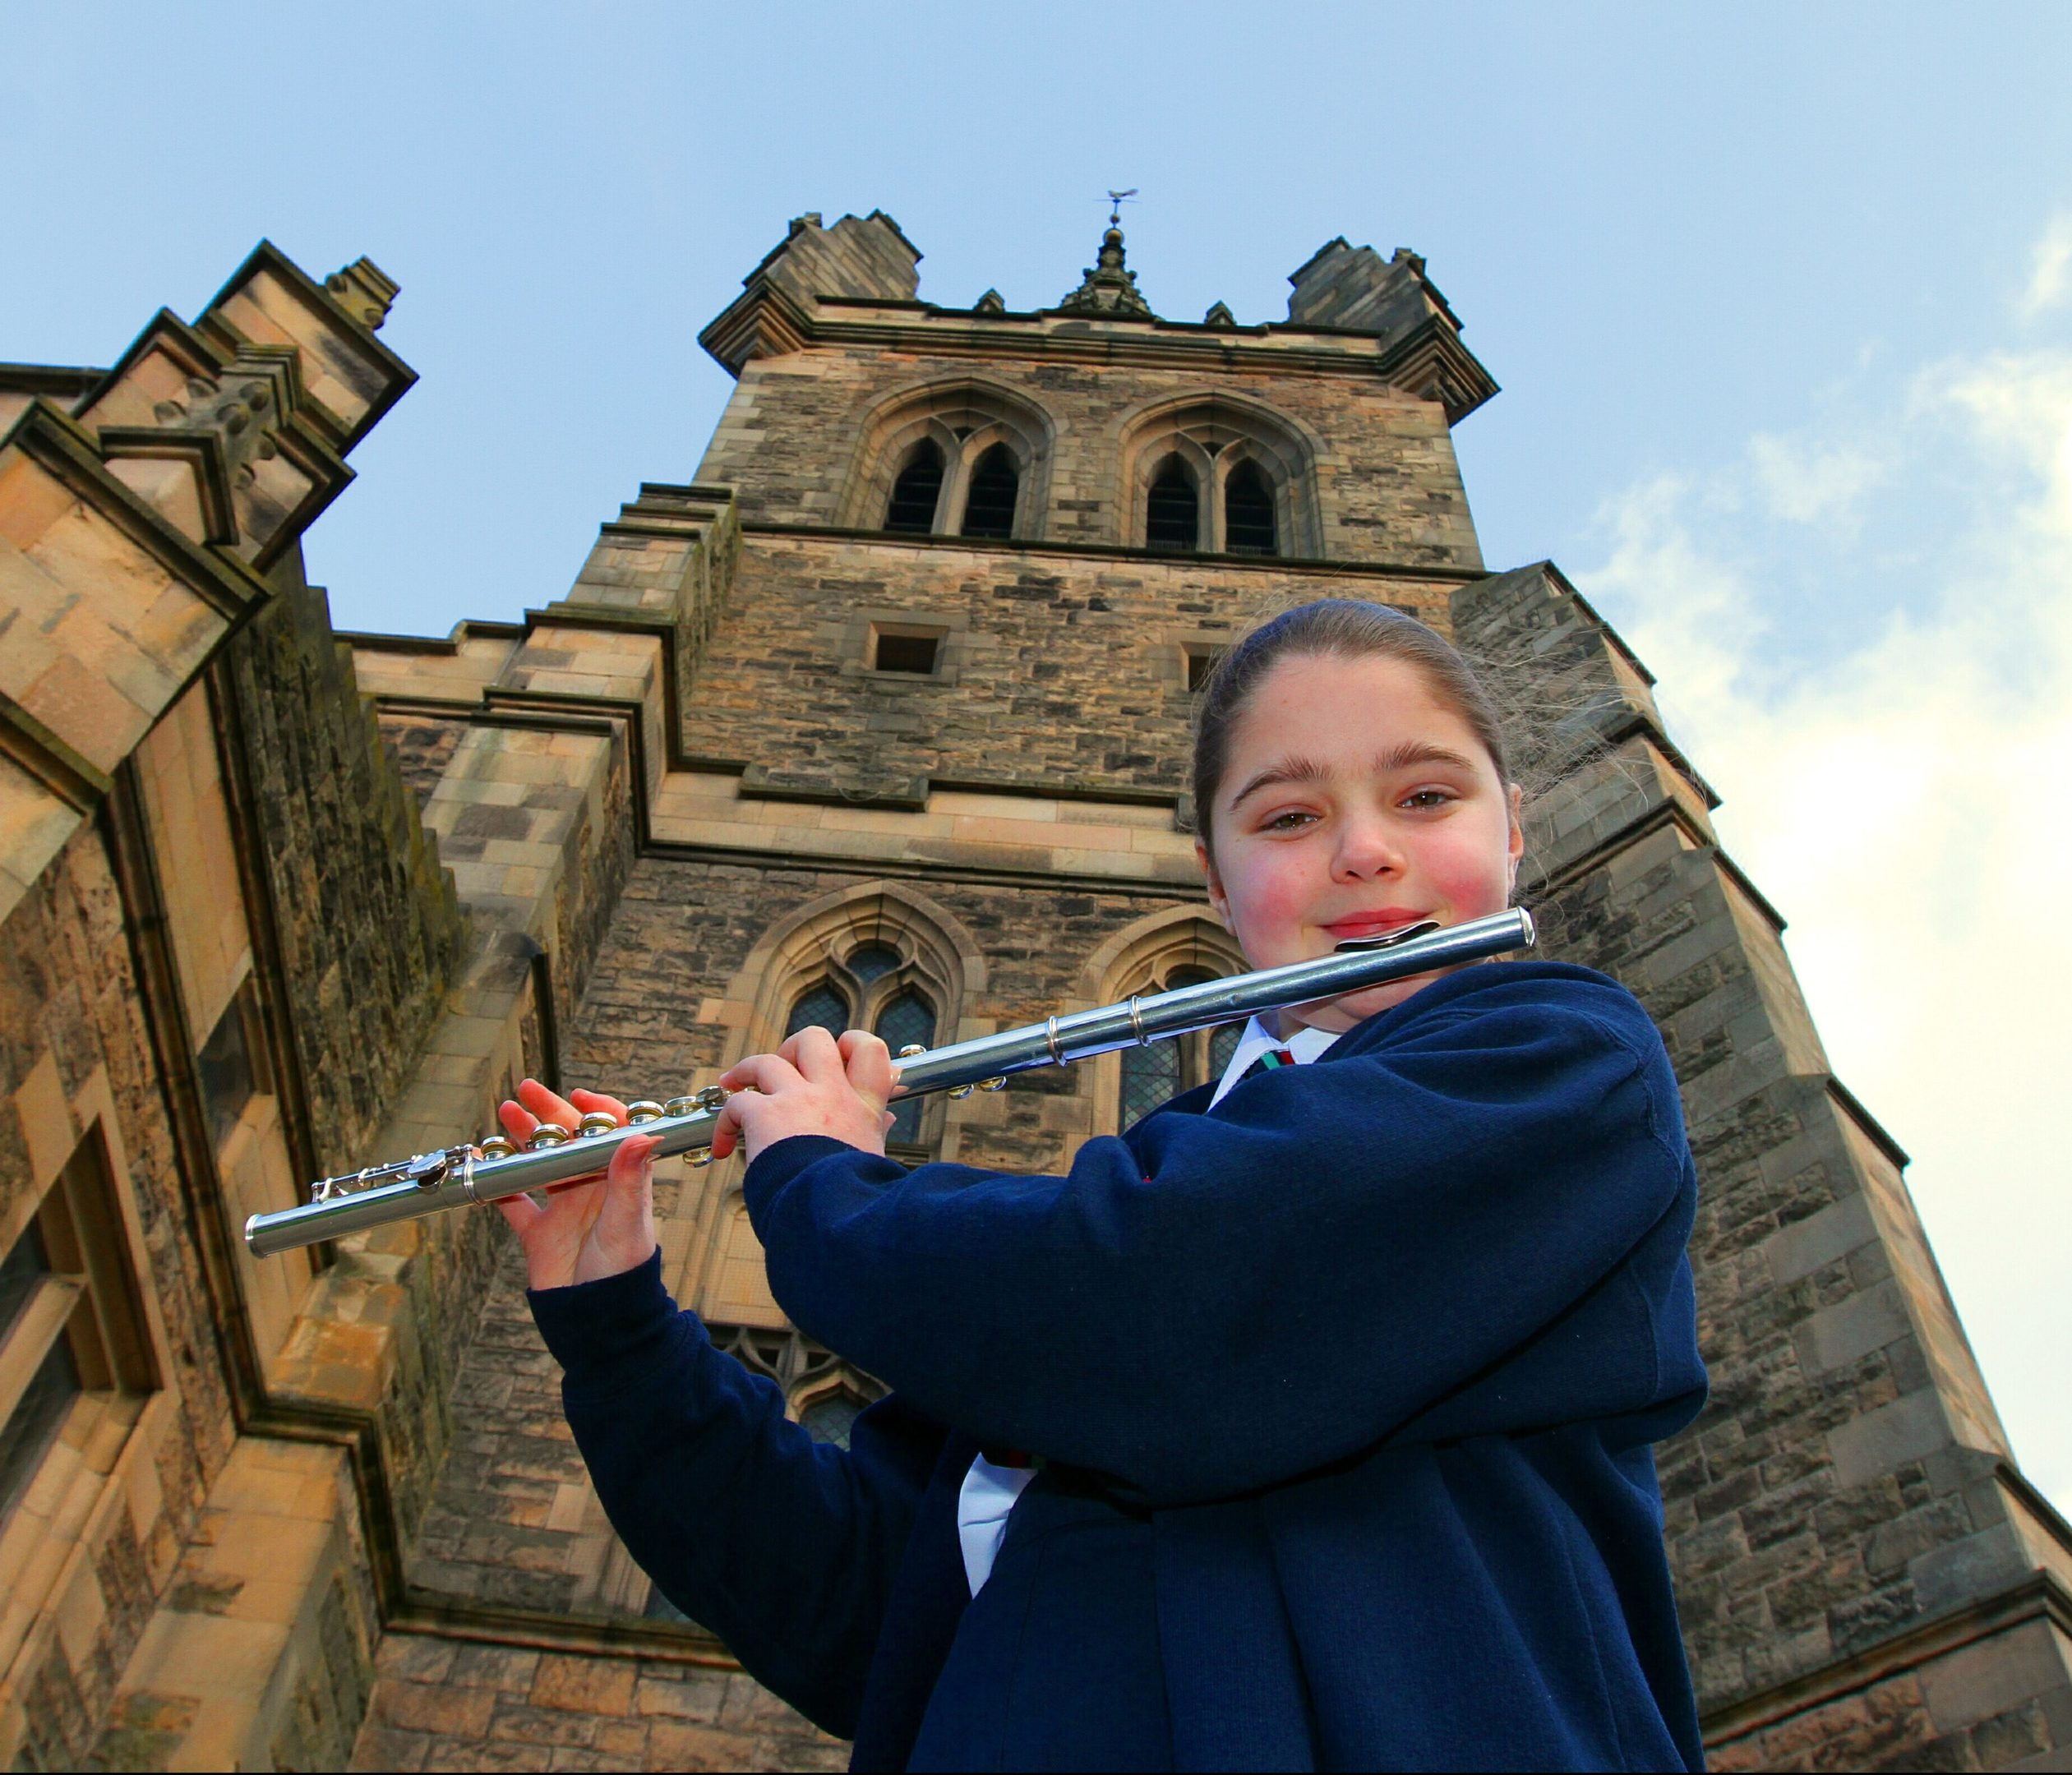 Honor Paul, 10, from Robert Douglas Primary,won the flute solo for beginners category